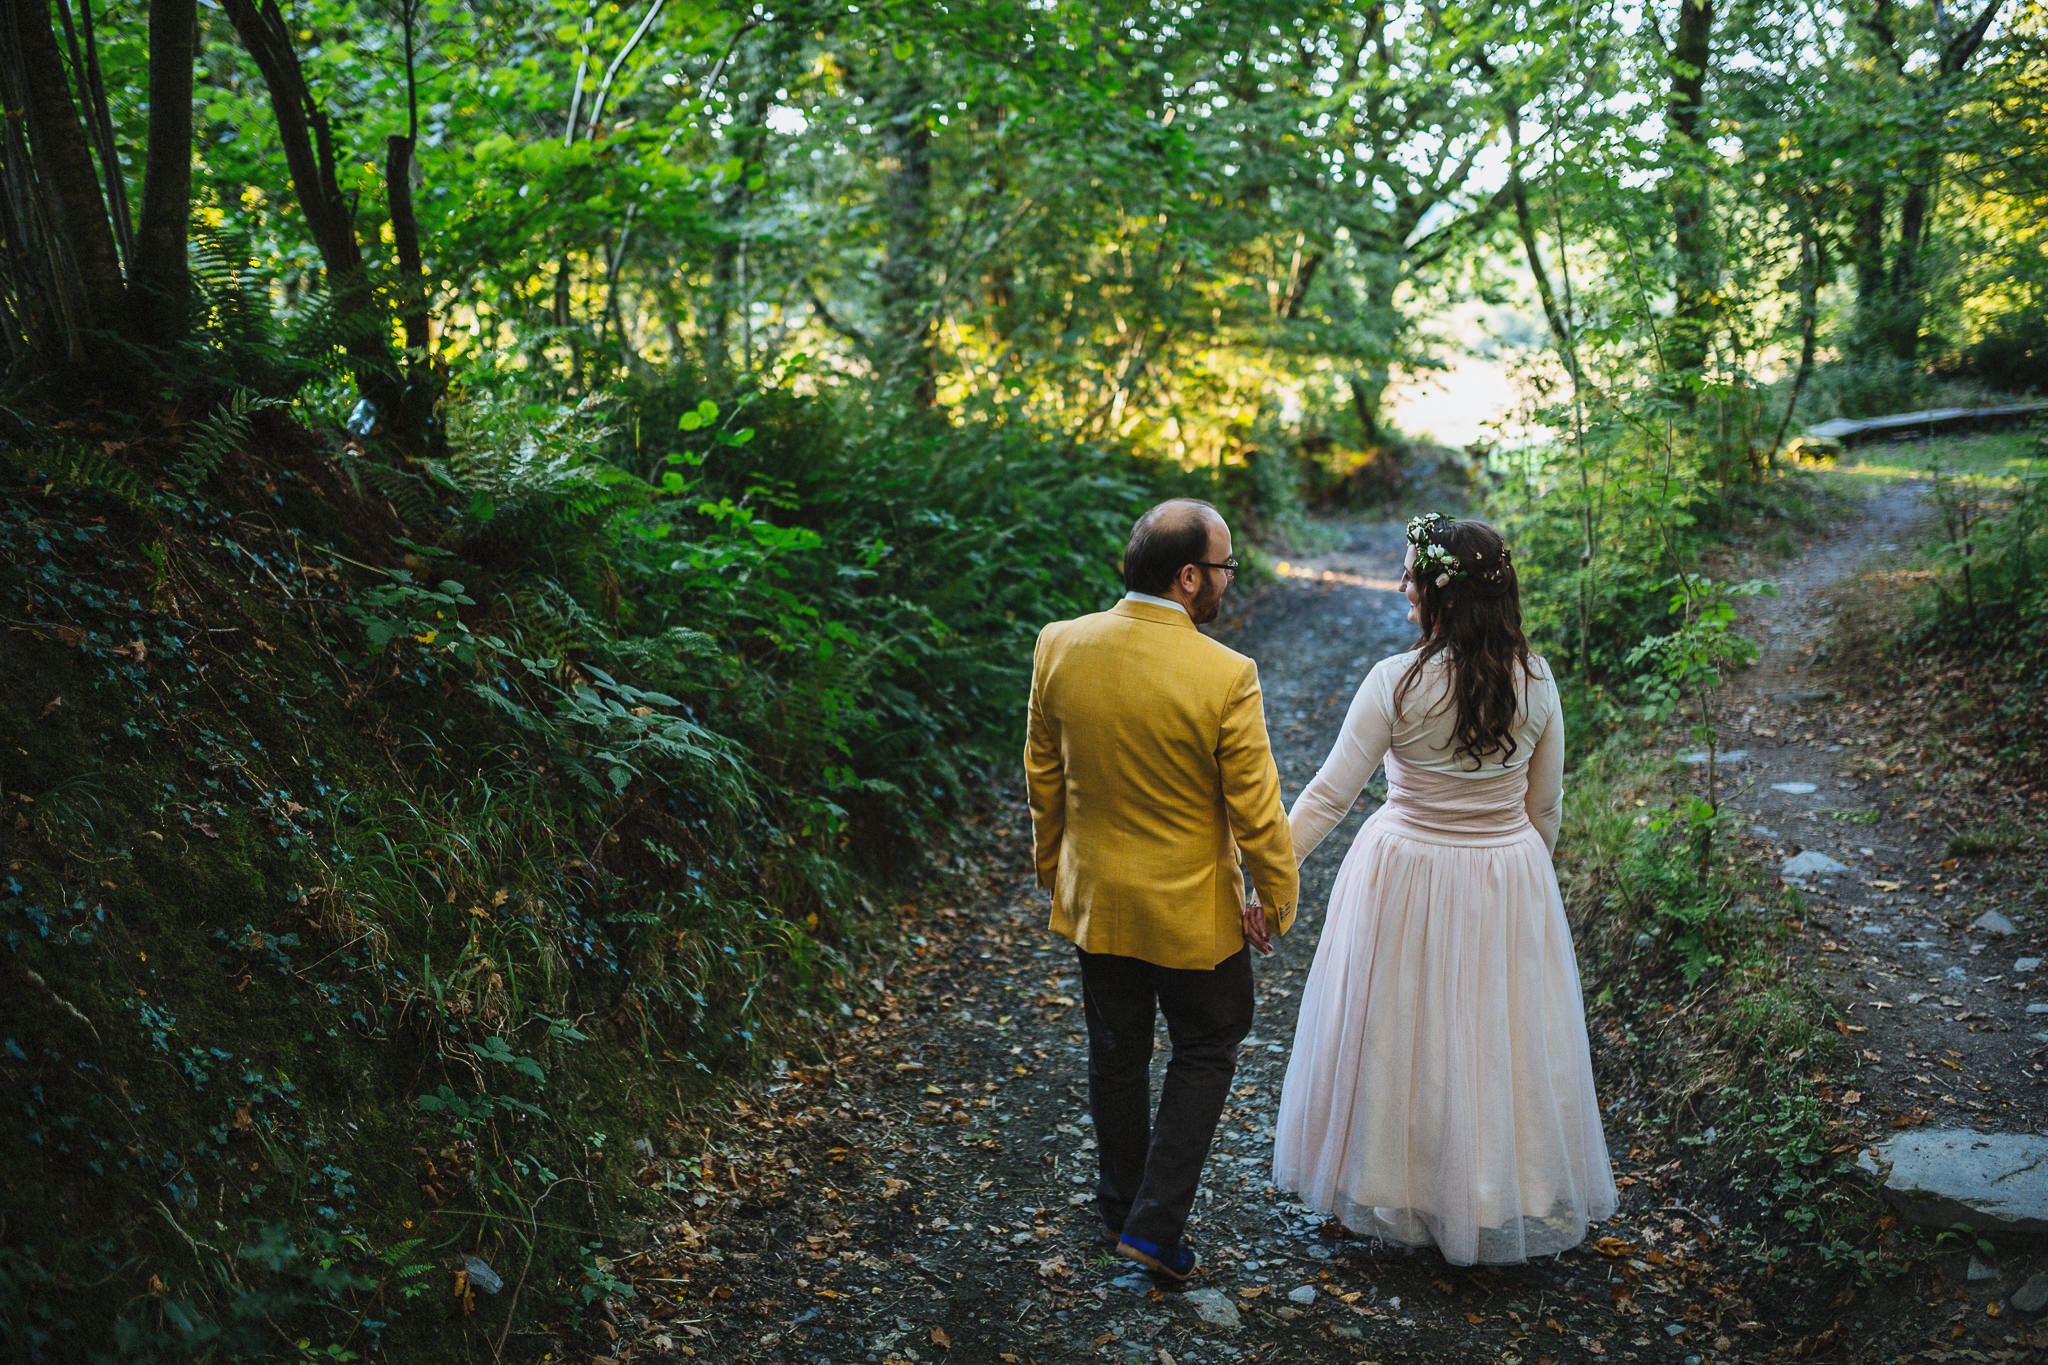 paul-marbrook-Fforest-Wedding-Photographer-90080